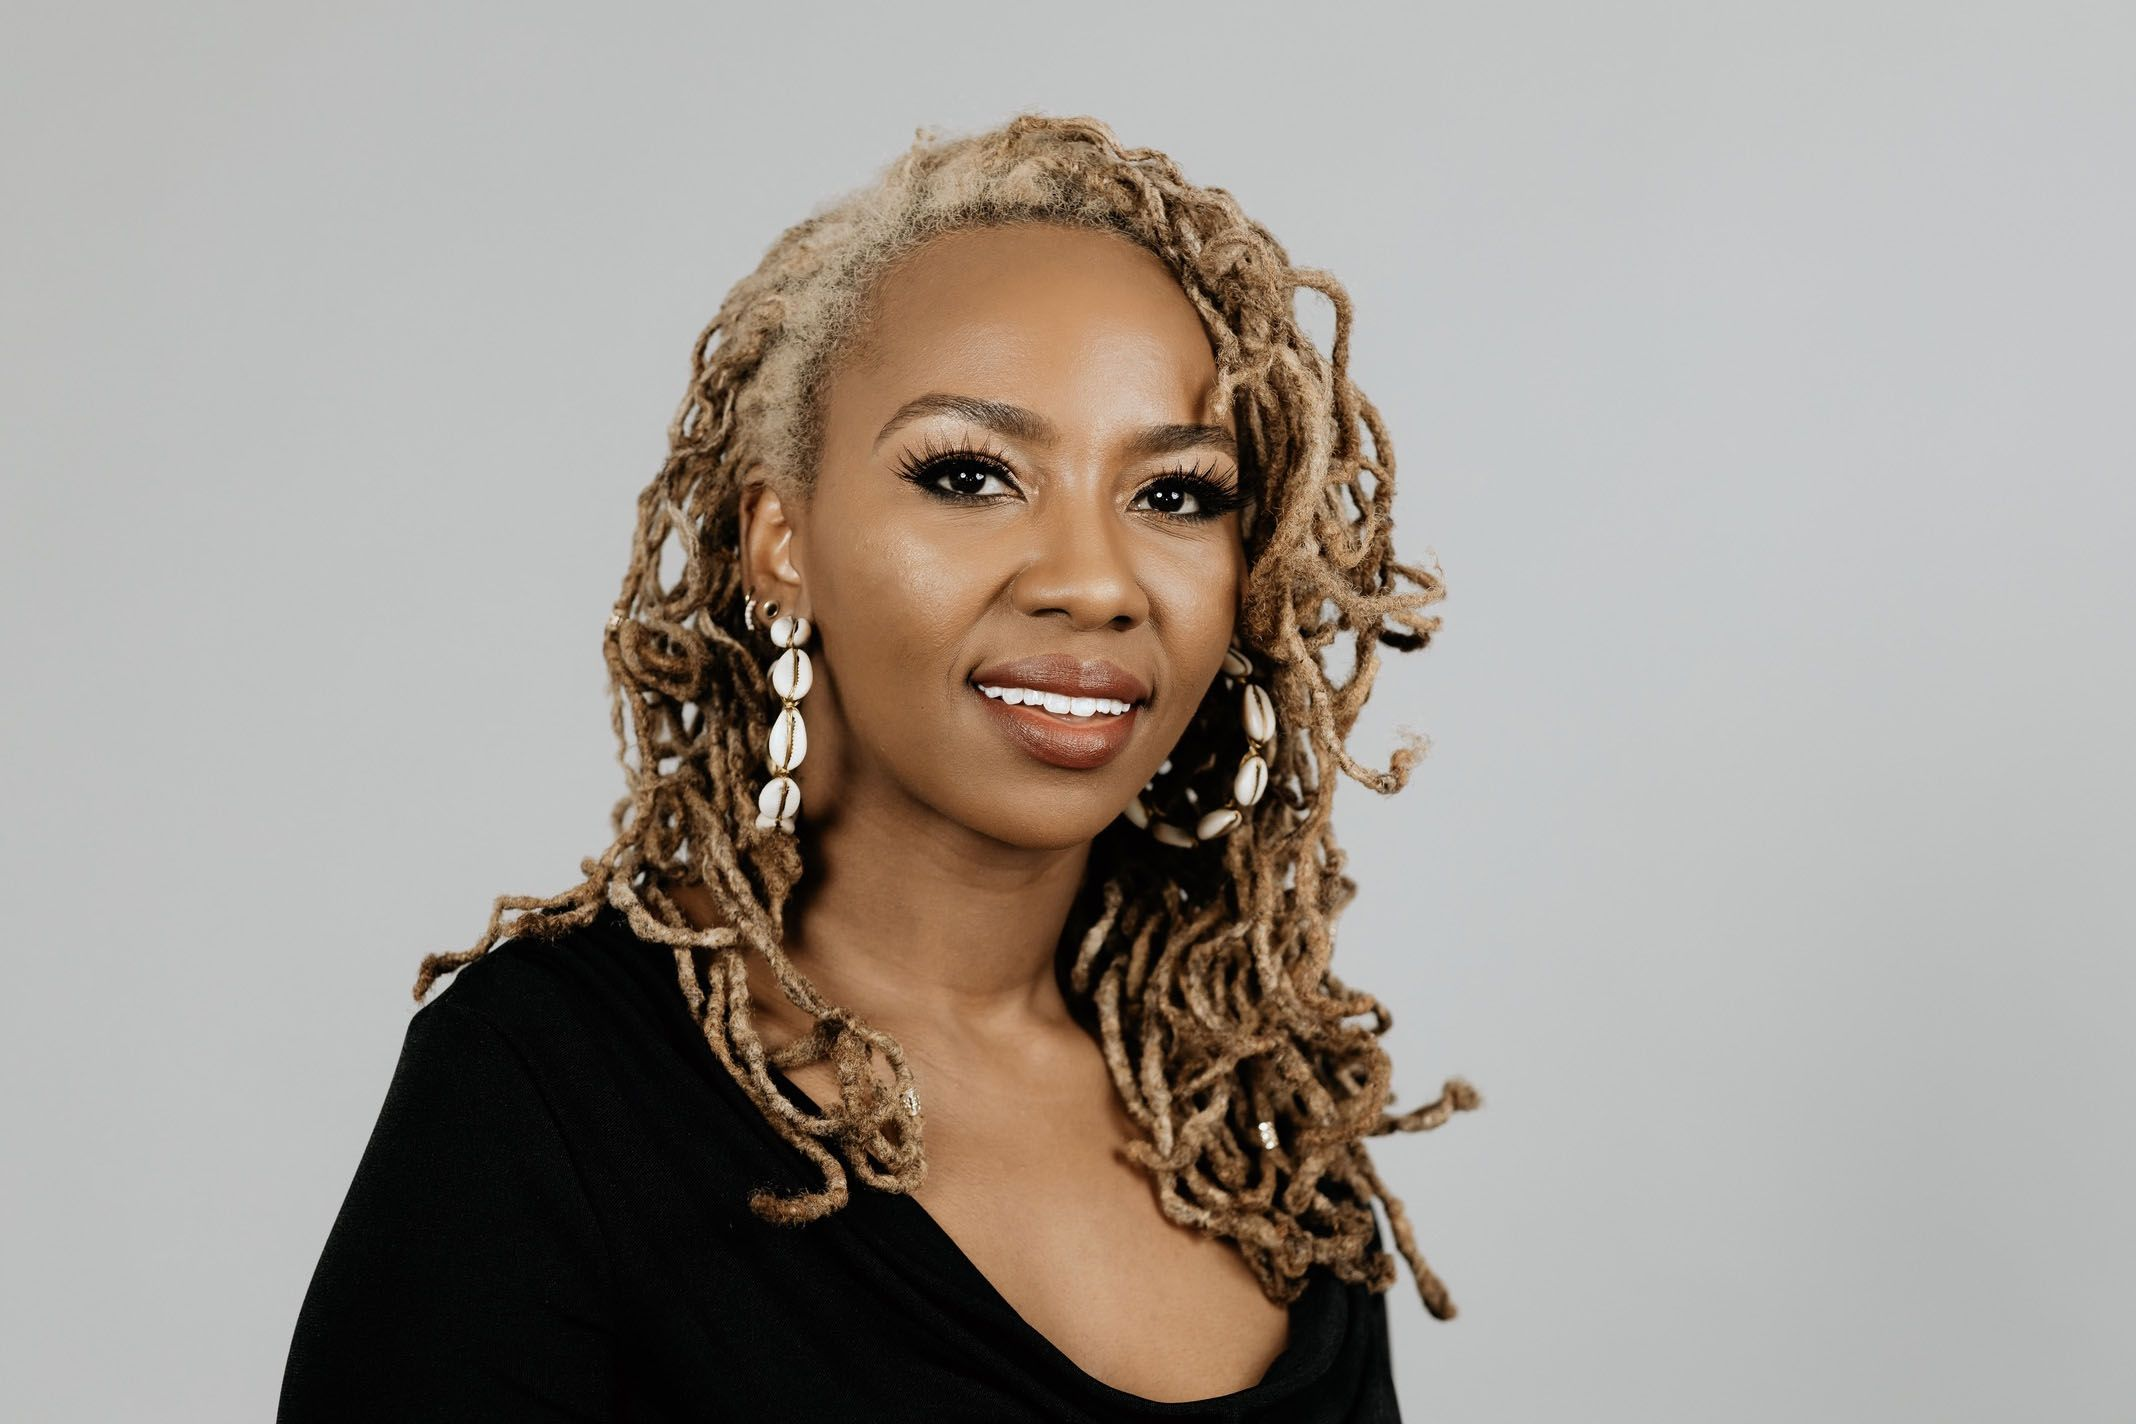 Black Lives Matter co-founder Opal Tometi interview: 'Black people can't  catch a break, even in a global pandemic'